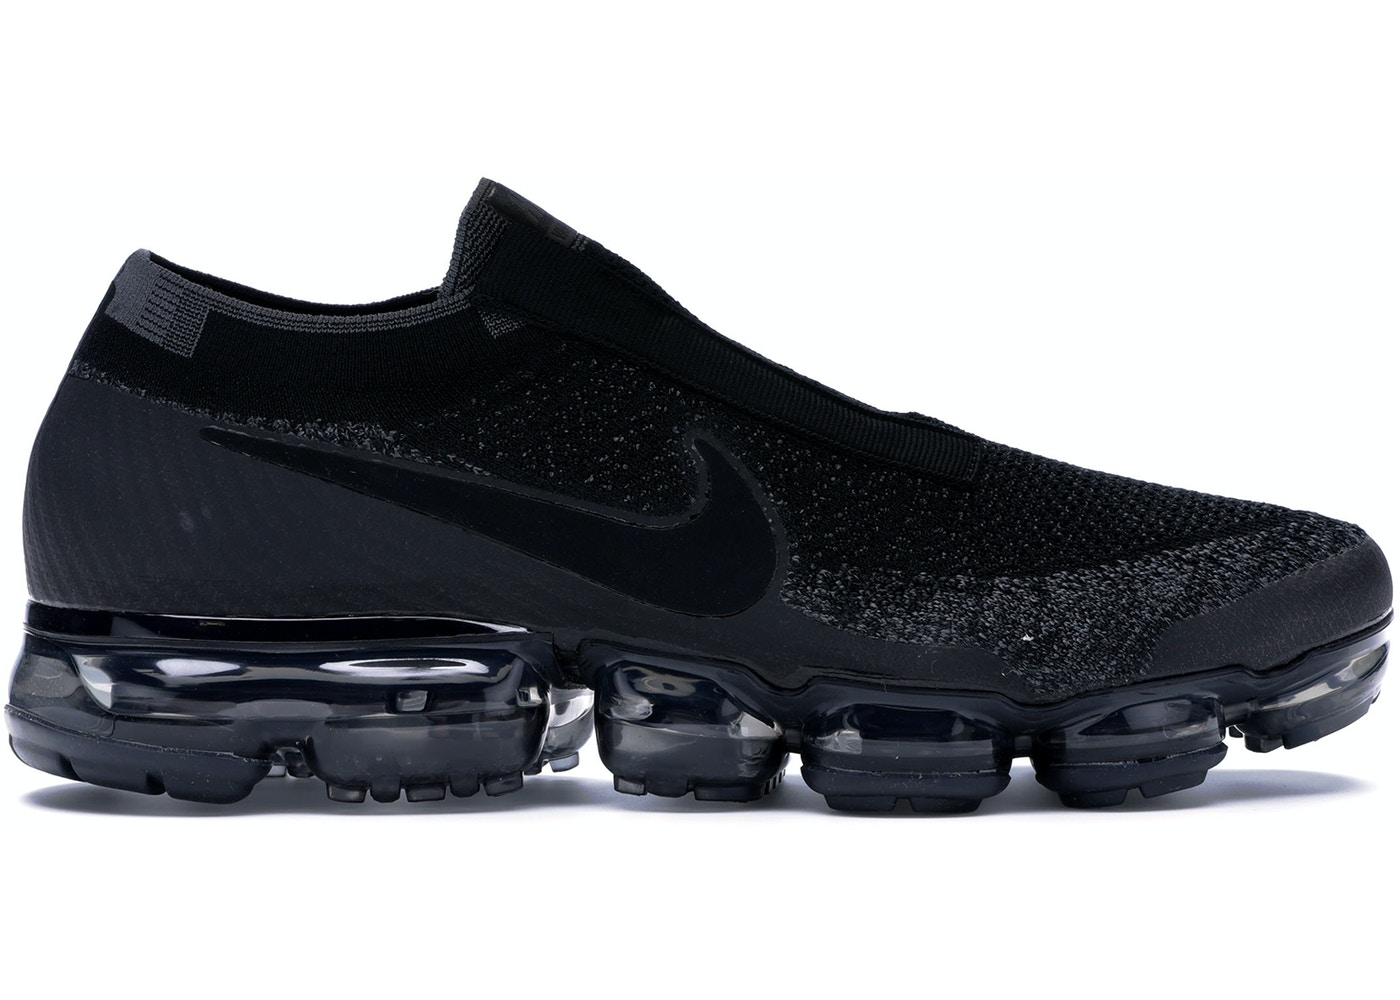 brand new 68736 7a897 Nike Air Max VaporMax Shoes - Price Premium